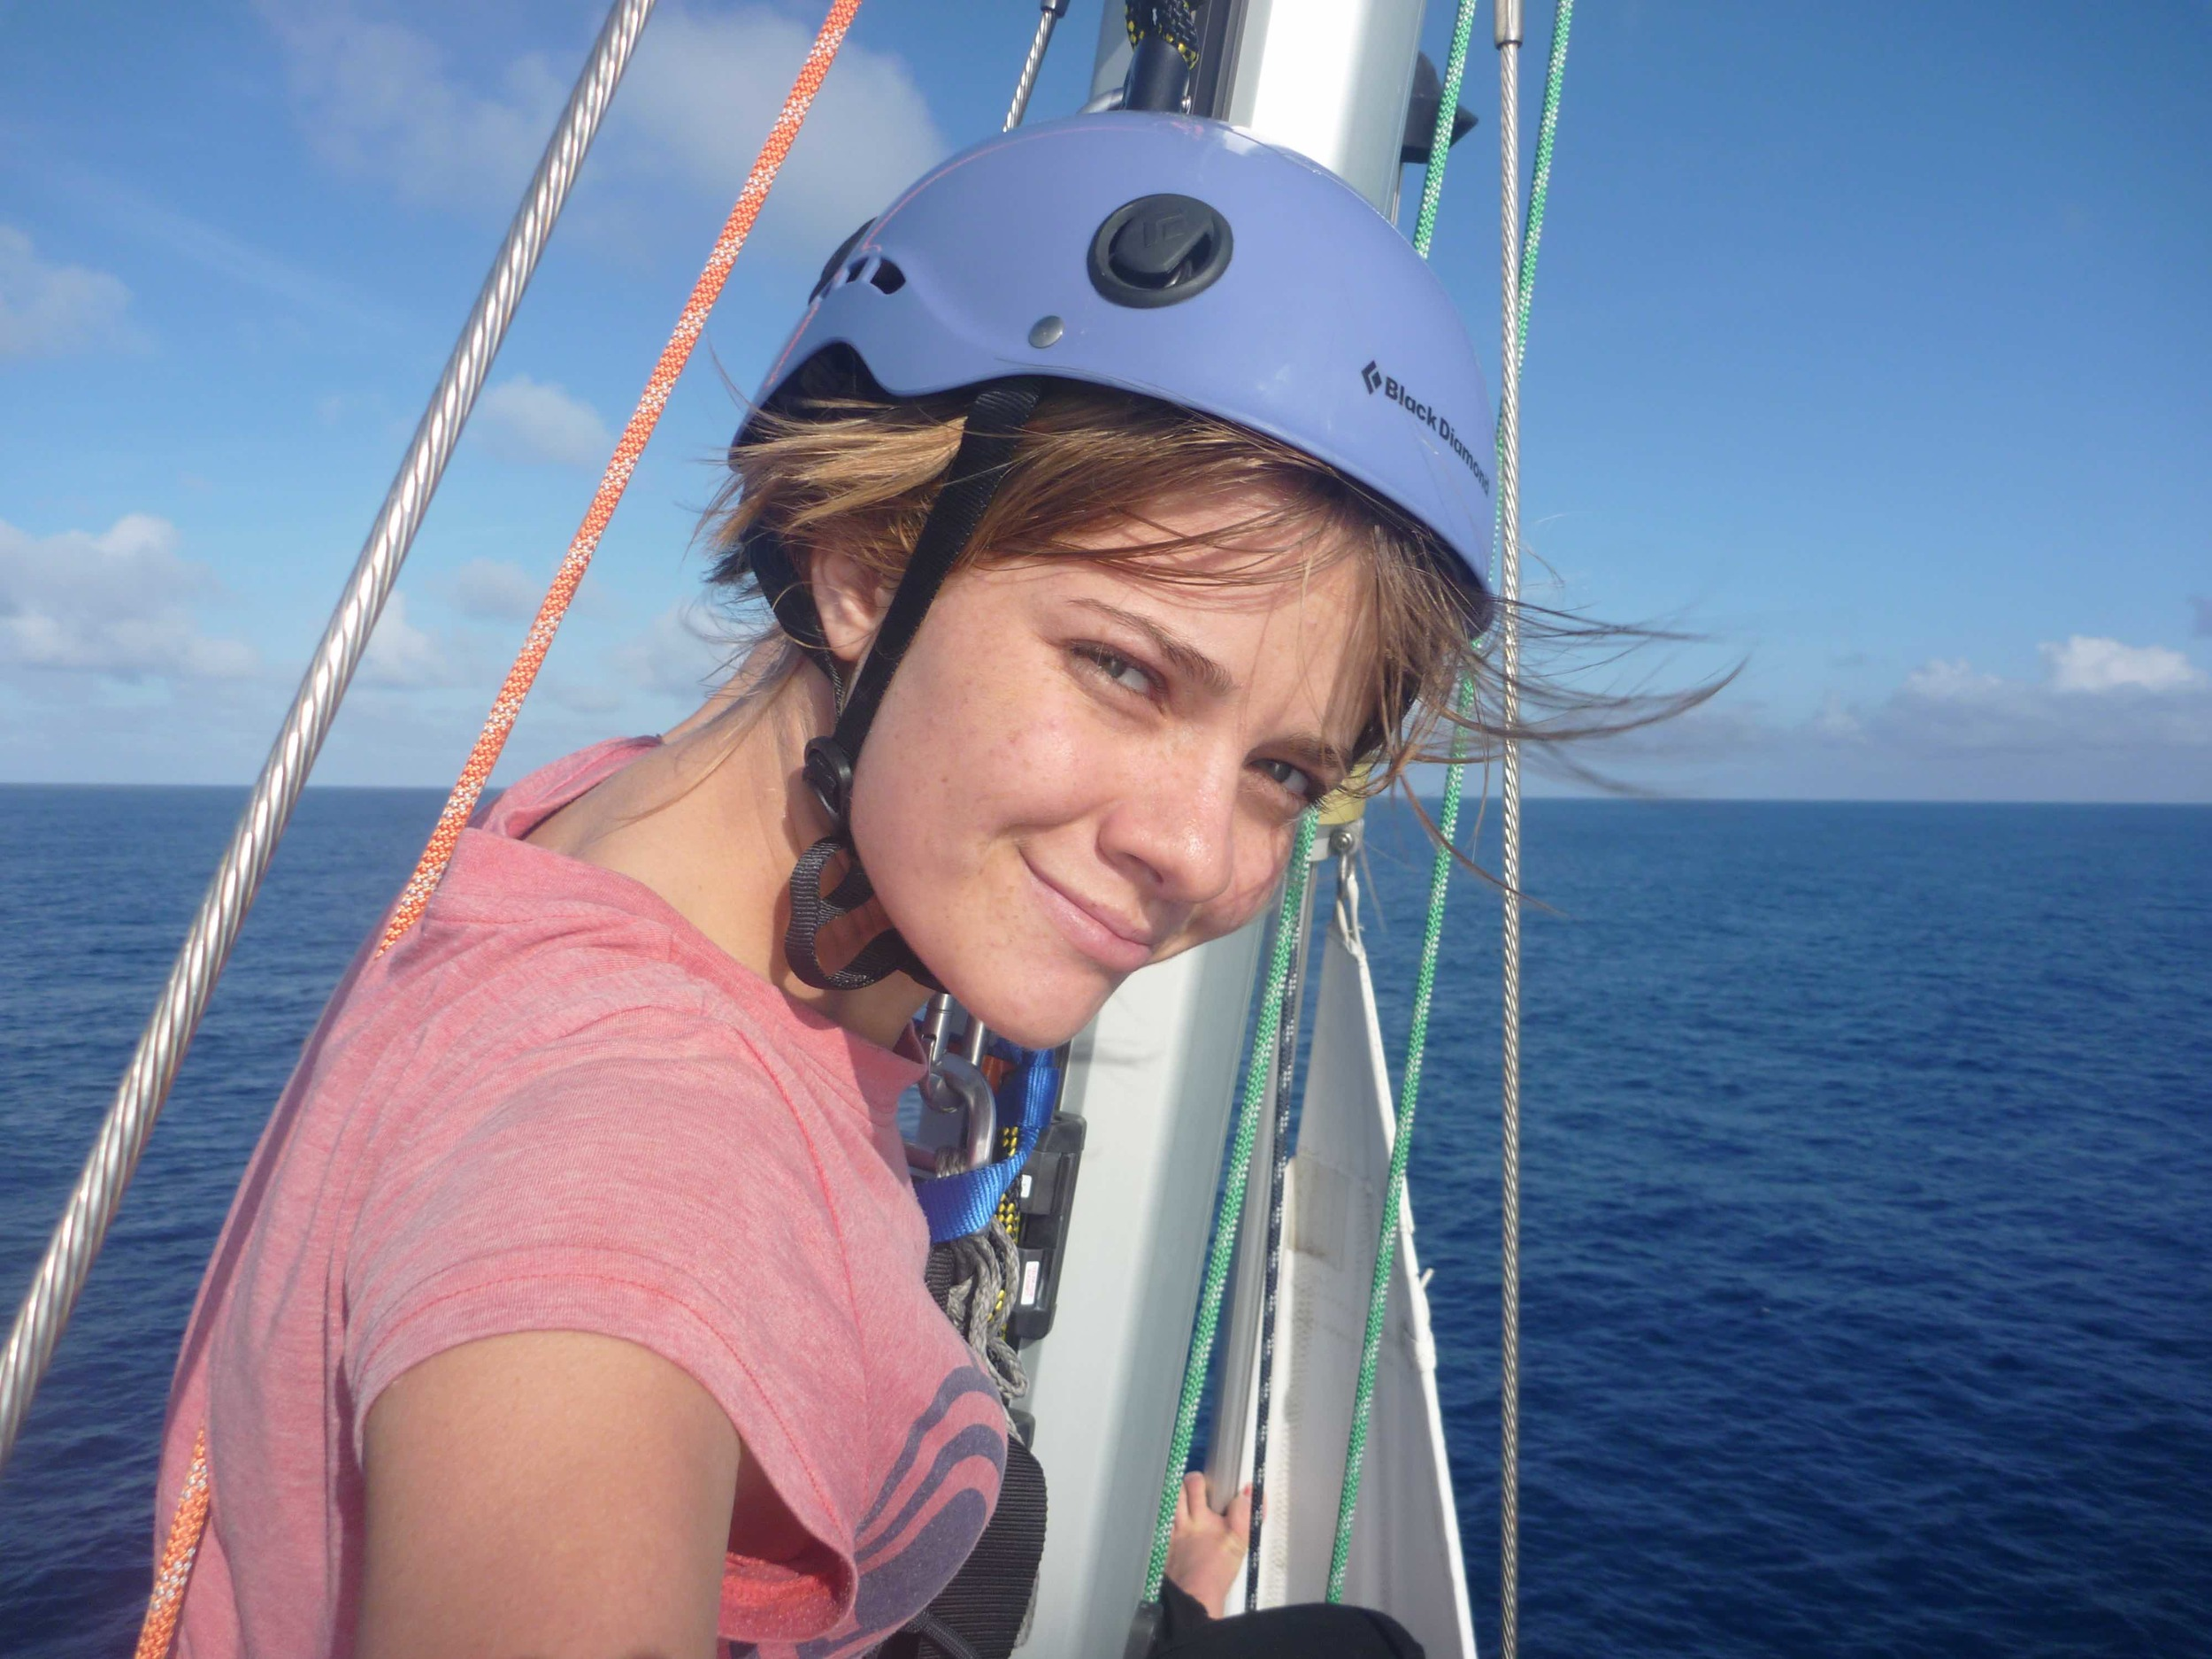 Jessica Watson inspecting the top of her mast on her circumnavigation